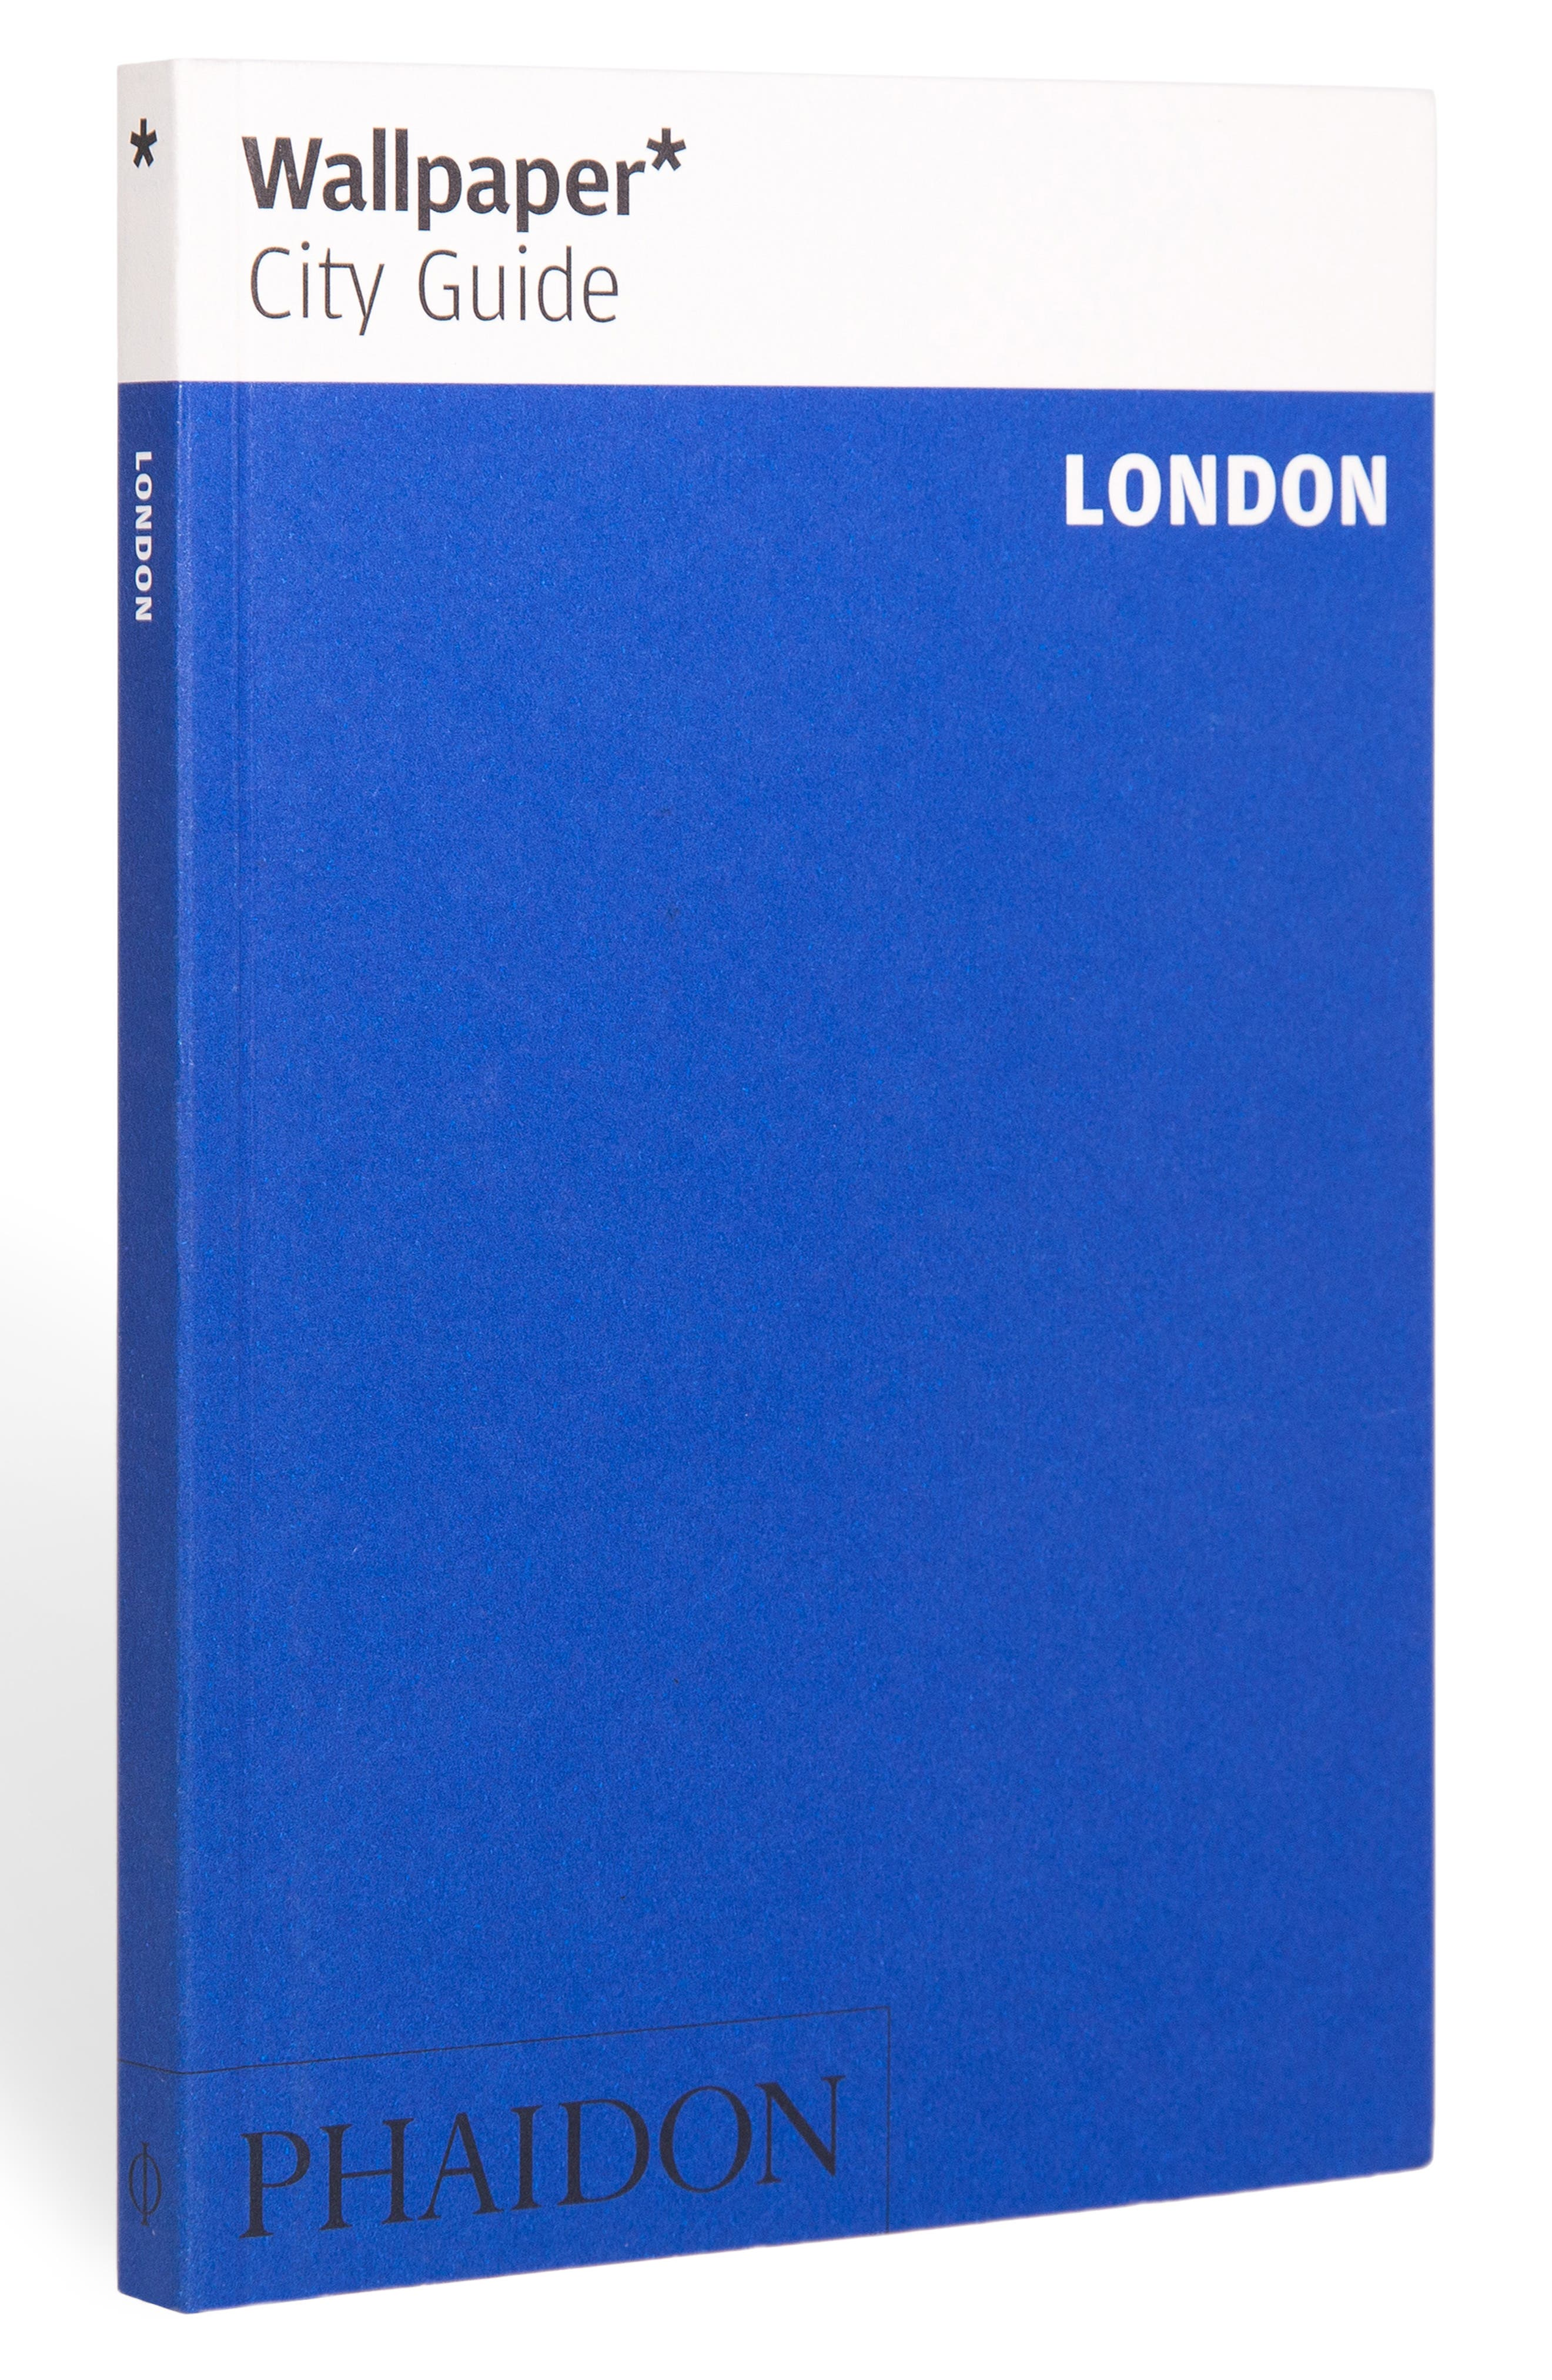 ISBN 9780714876504 product image for 'Wallpaper* City Guide London' Pocket Size Travel Book, Size One Size - Blue | upcitemdb.com